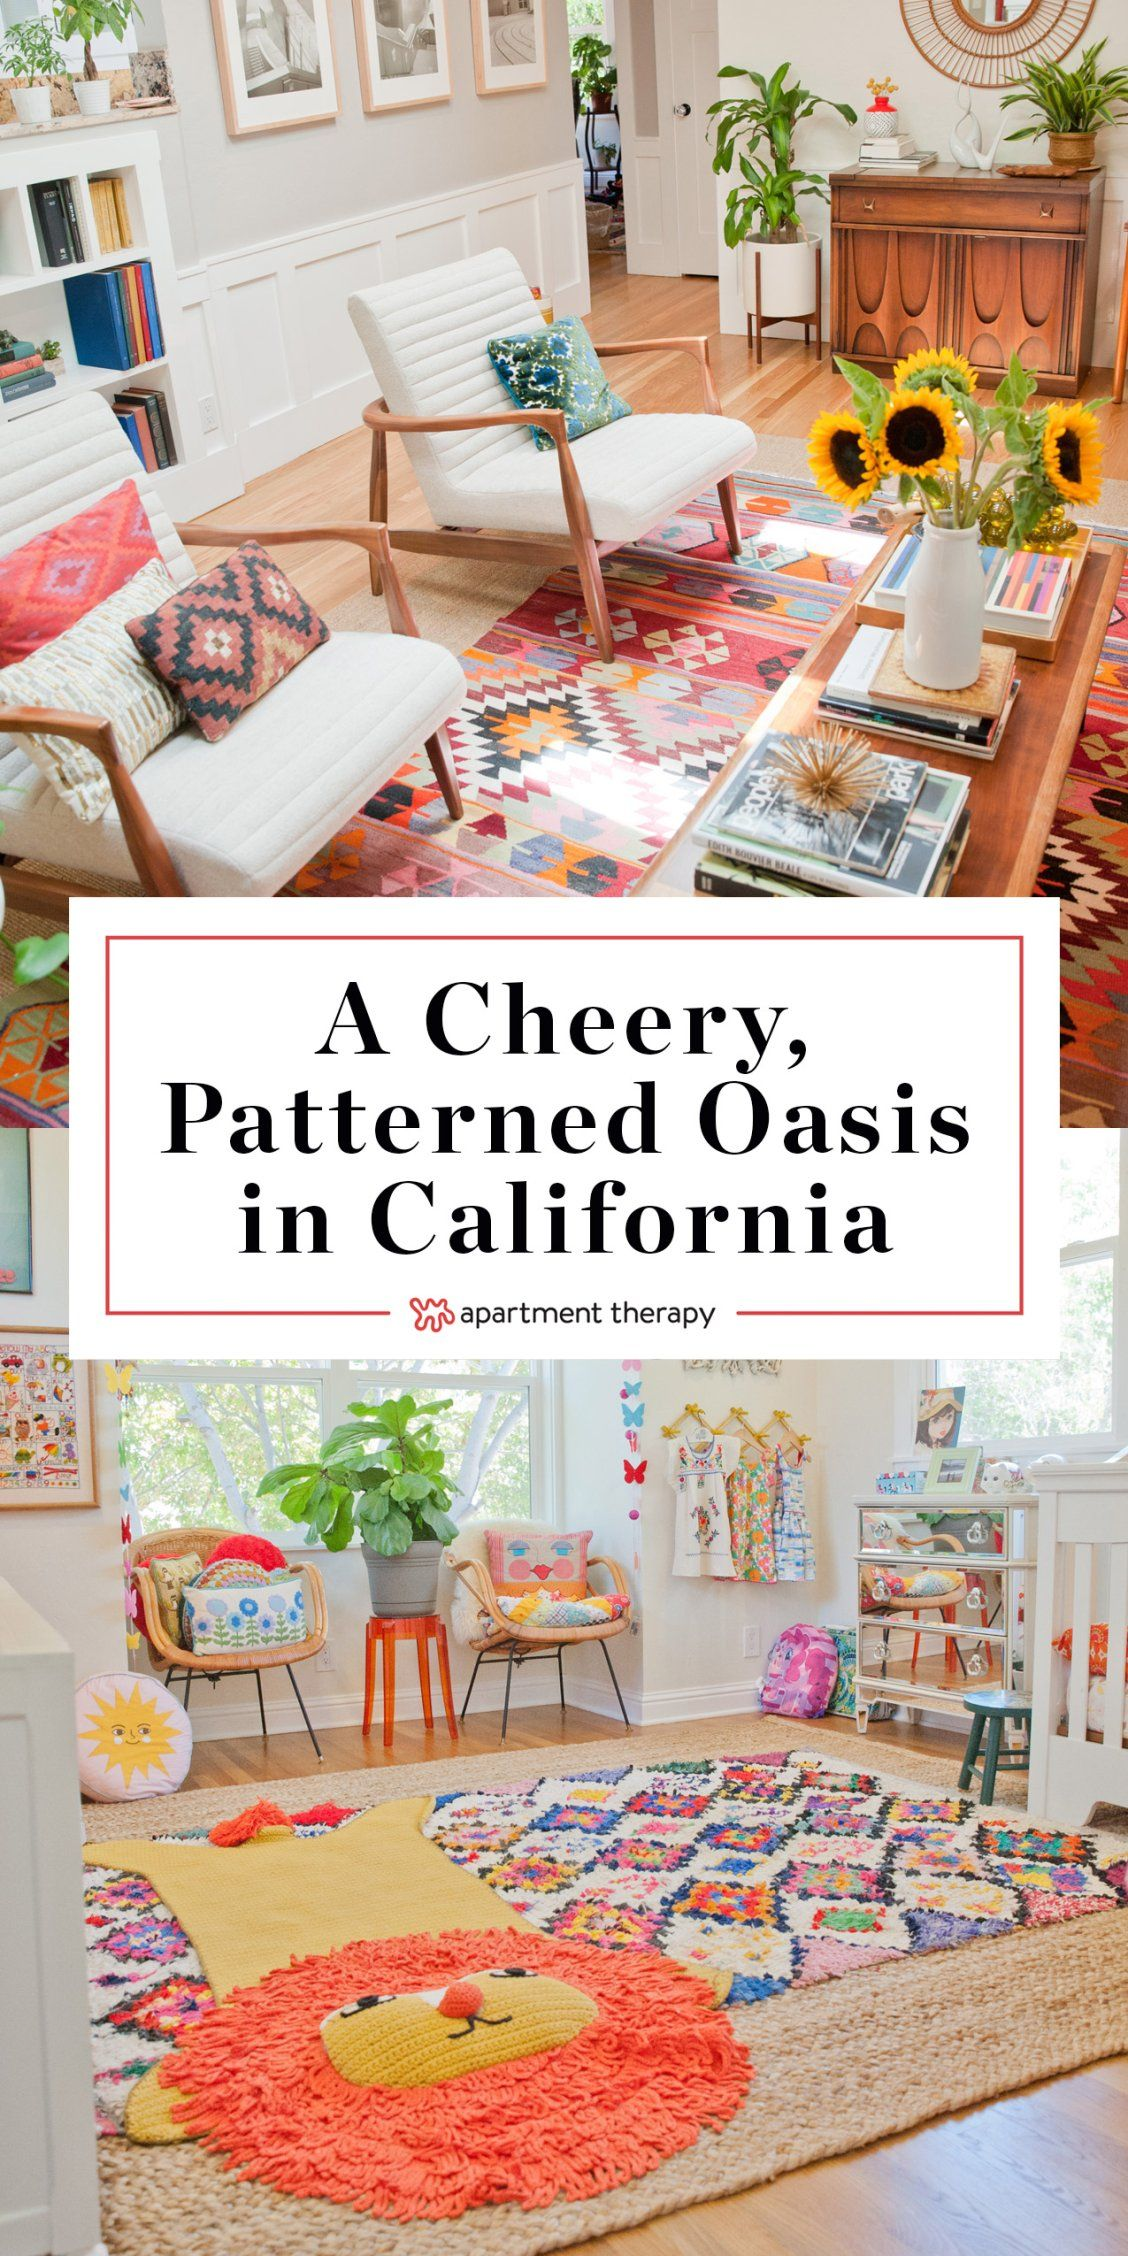 House Tours A Cheery, Patterned Bohemian Oasis In California Looking